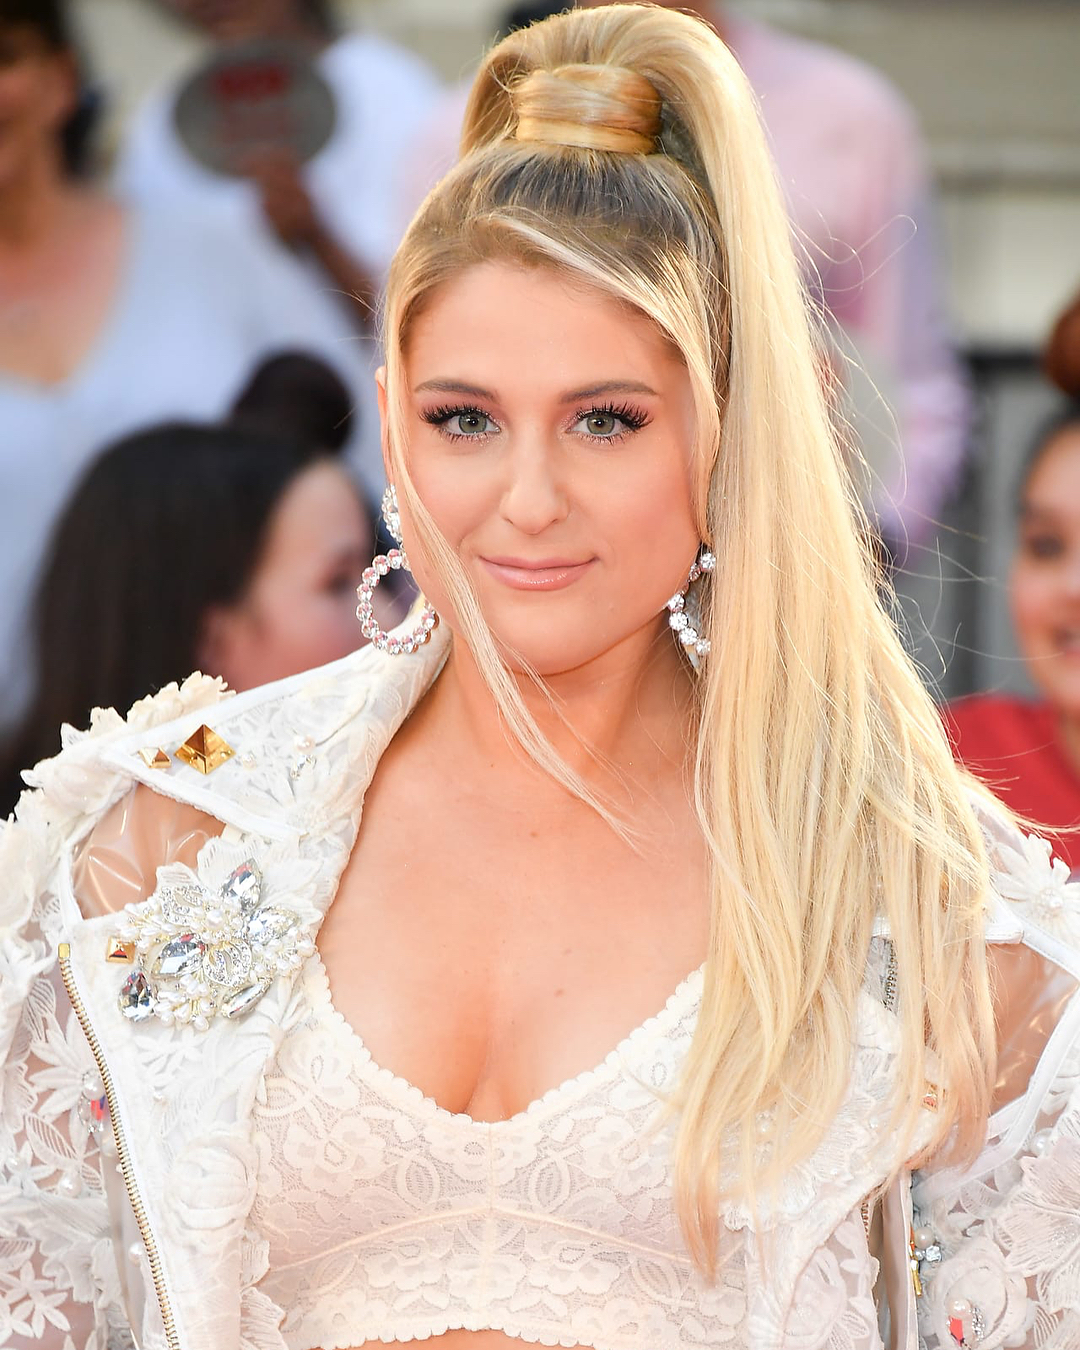 49 hot photos of Megan Trainor that are simply gorgeous